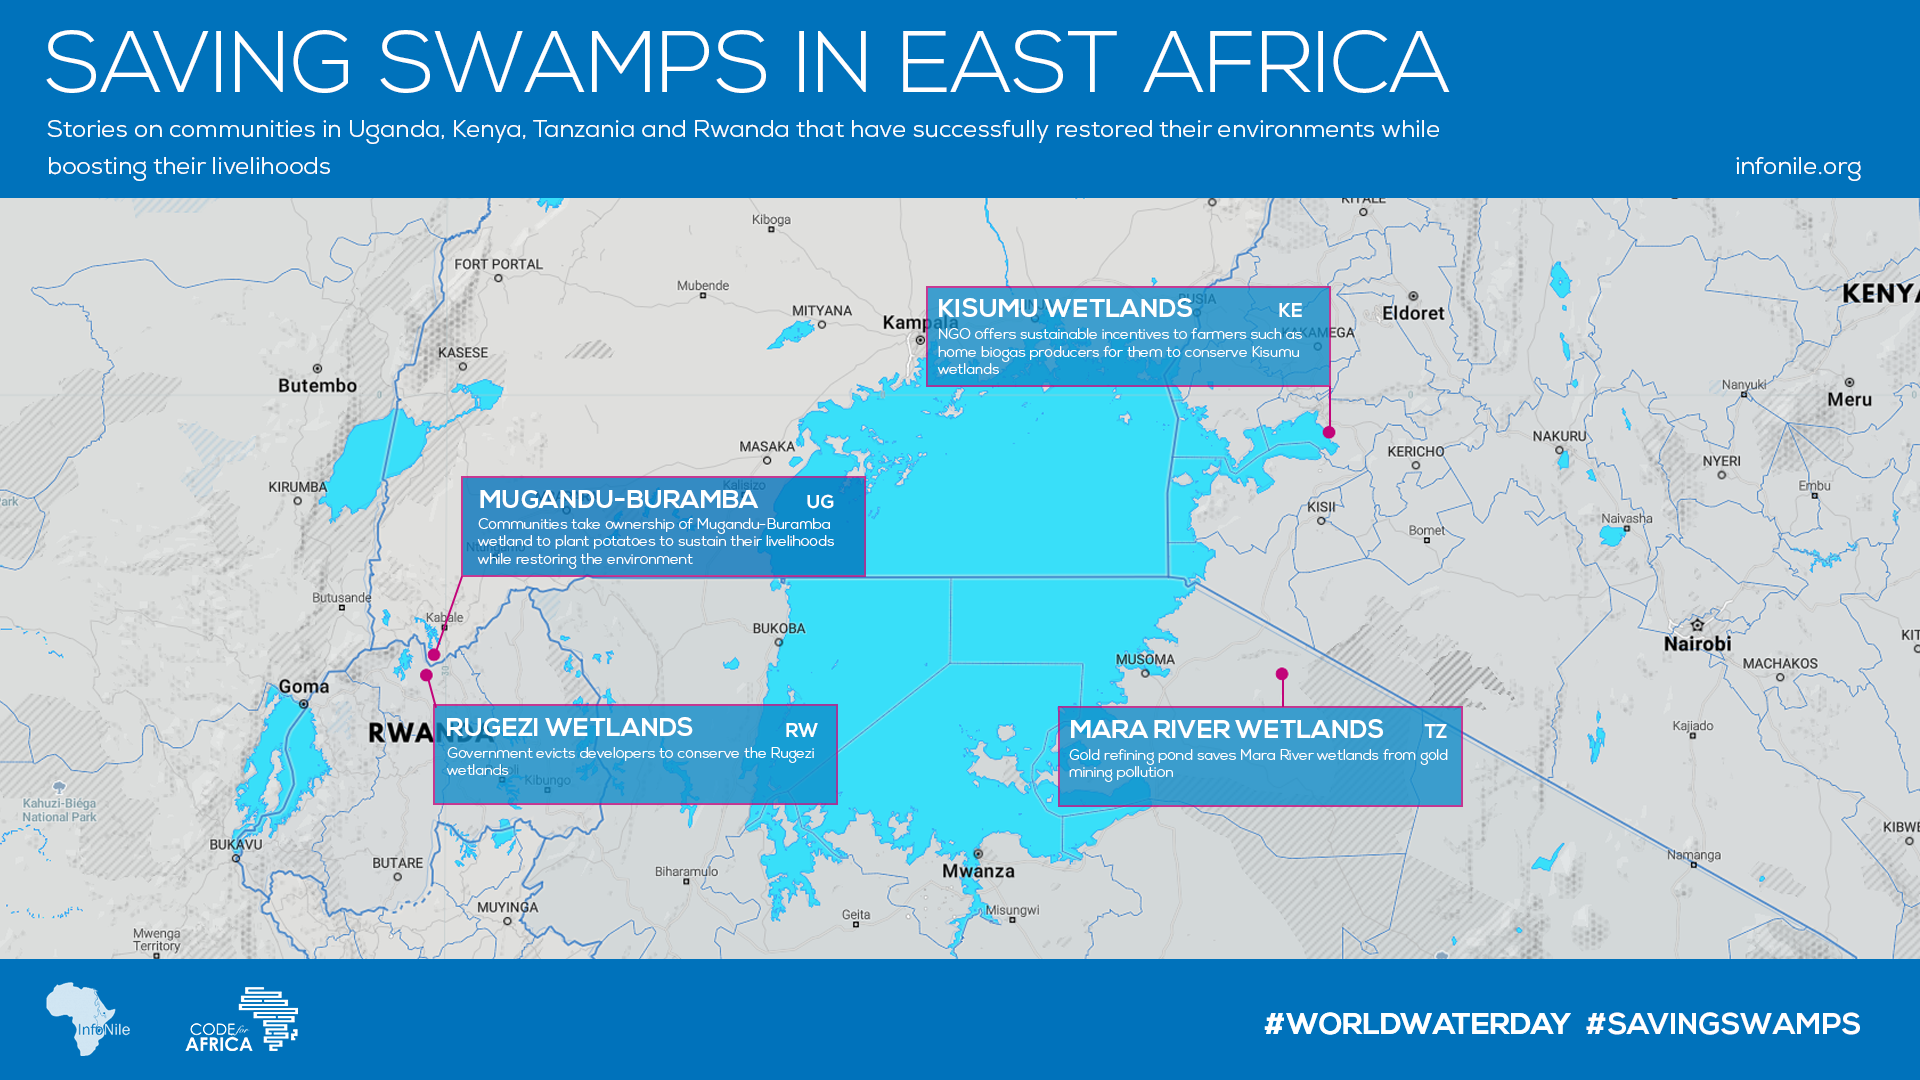 Saving Swamps in East Africa